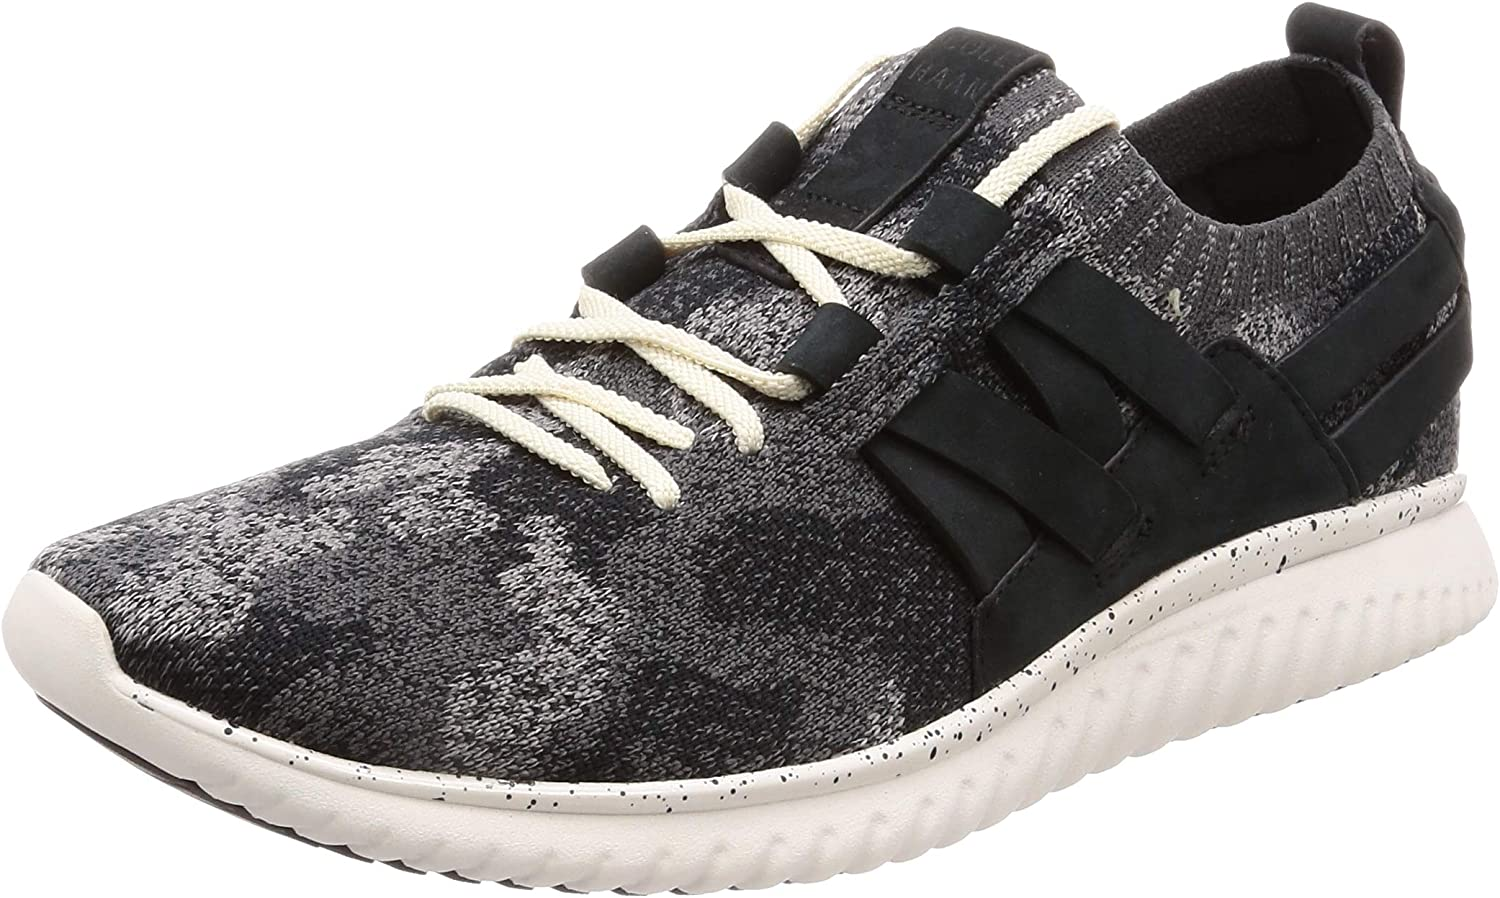 Cole Haan Men's shoes Grandmotion Woven Sneaker with Stitchlite